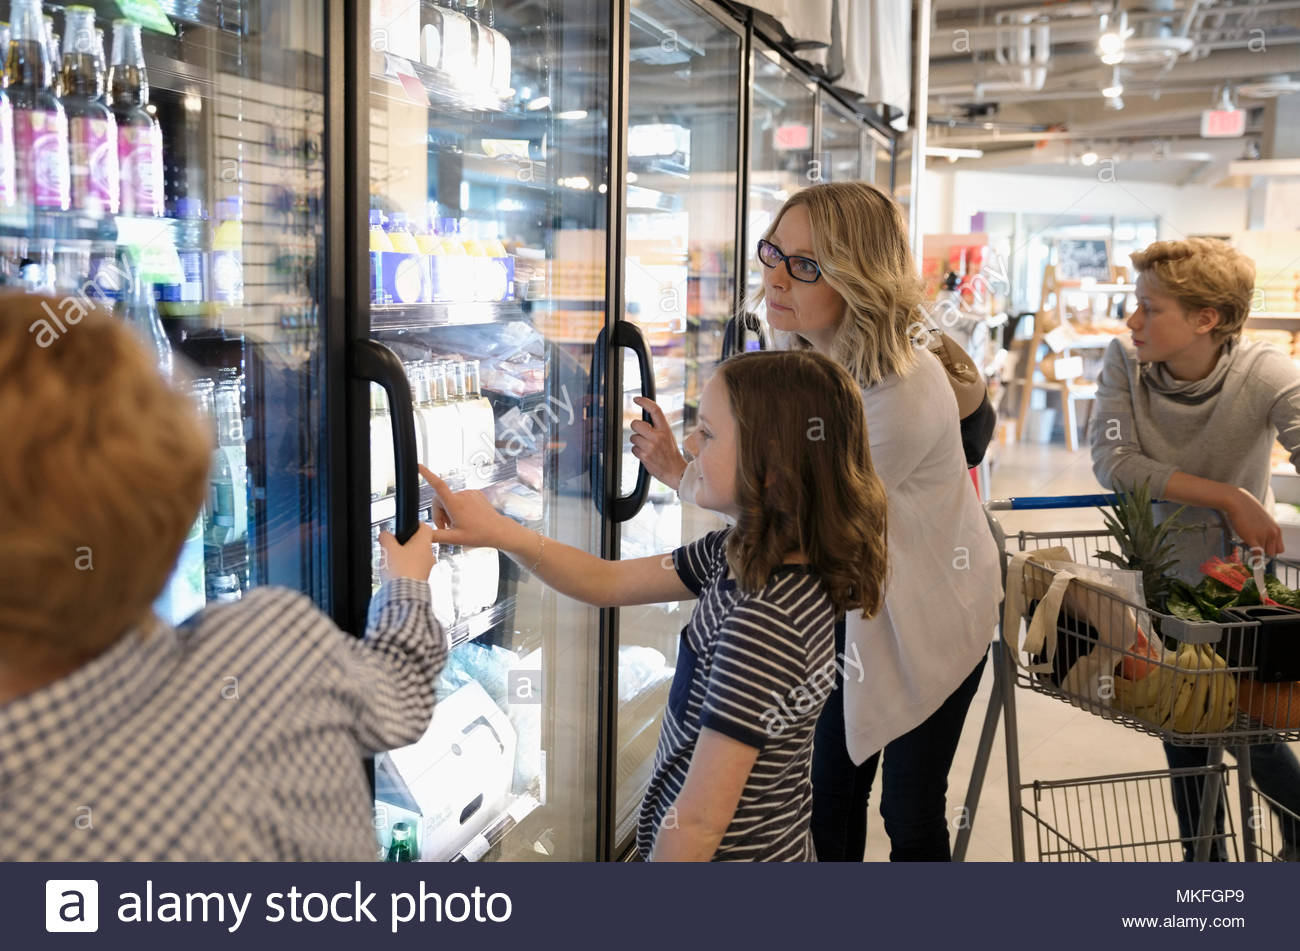 Mother and children grocery shopping in refrigerated market aisle - Stock Image